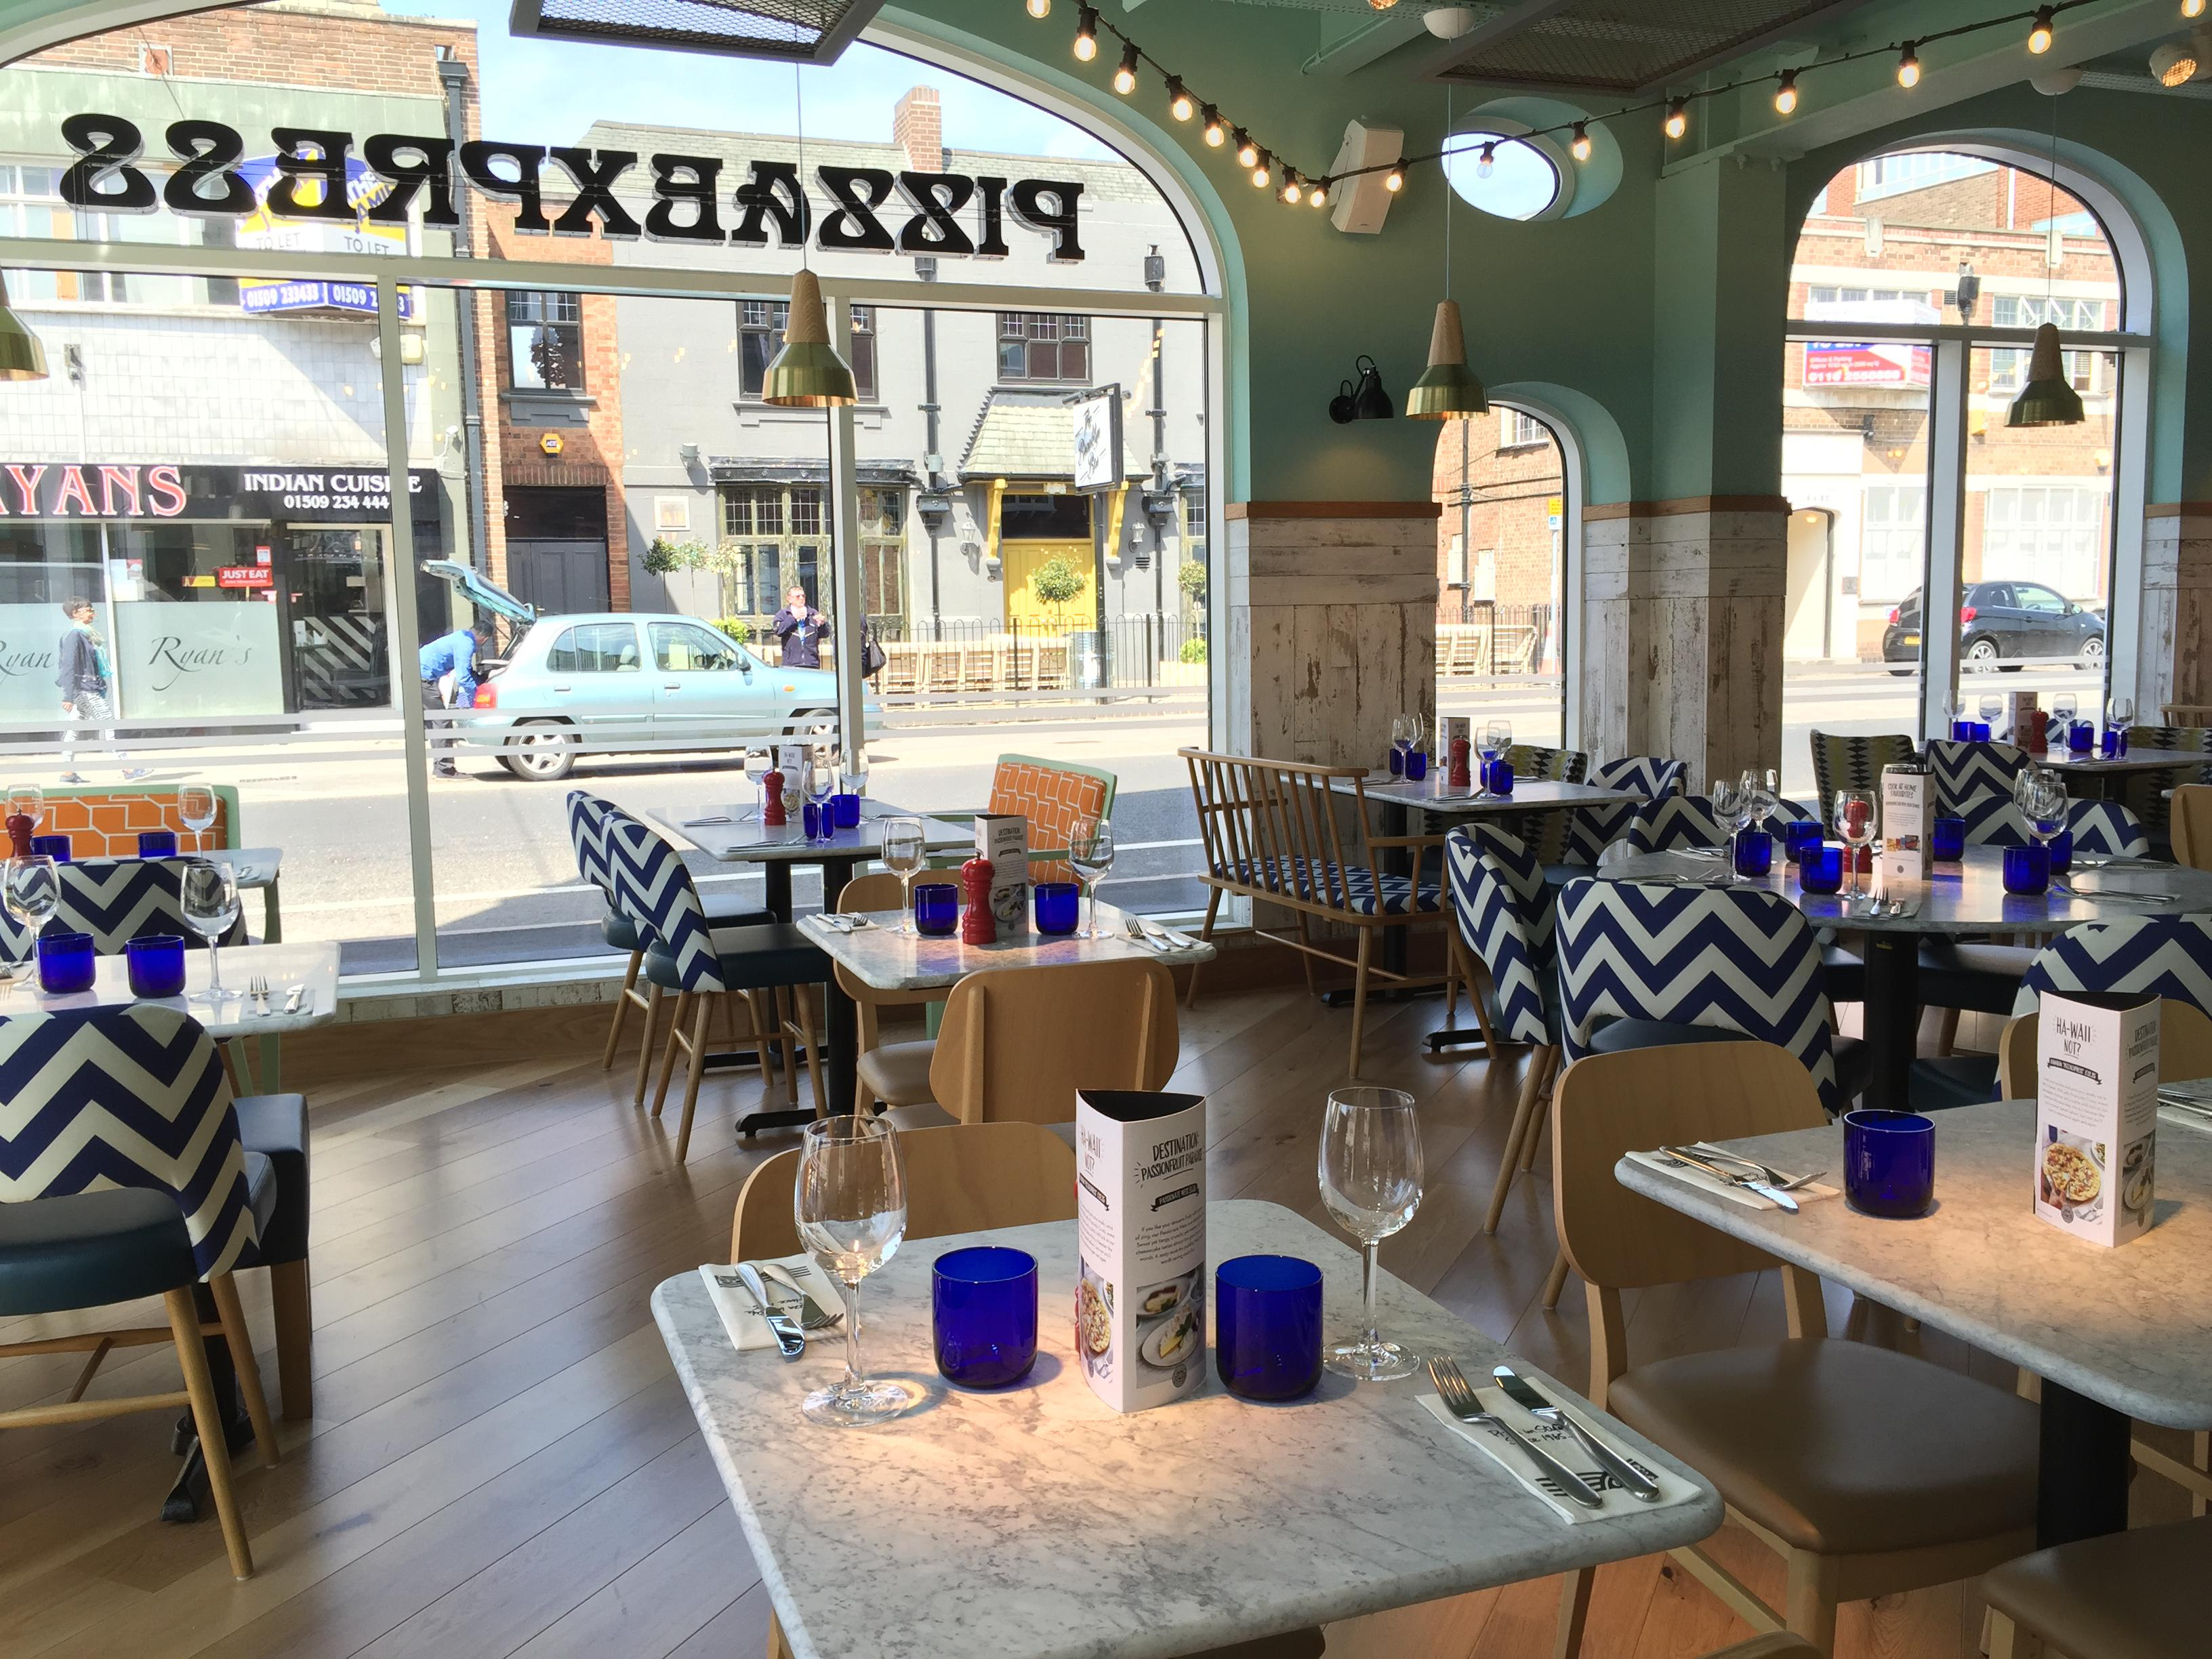 Pizzaexpress Redesigns Out Of Touch Interiors To Take On